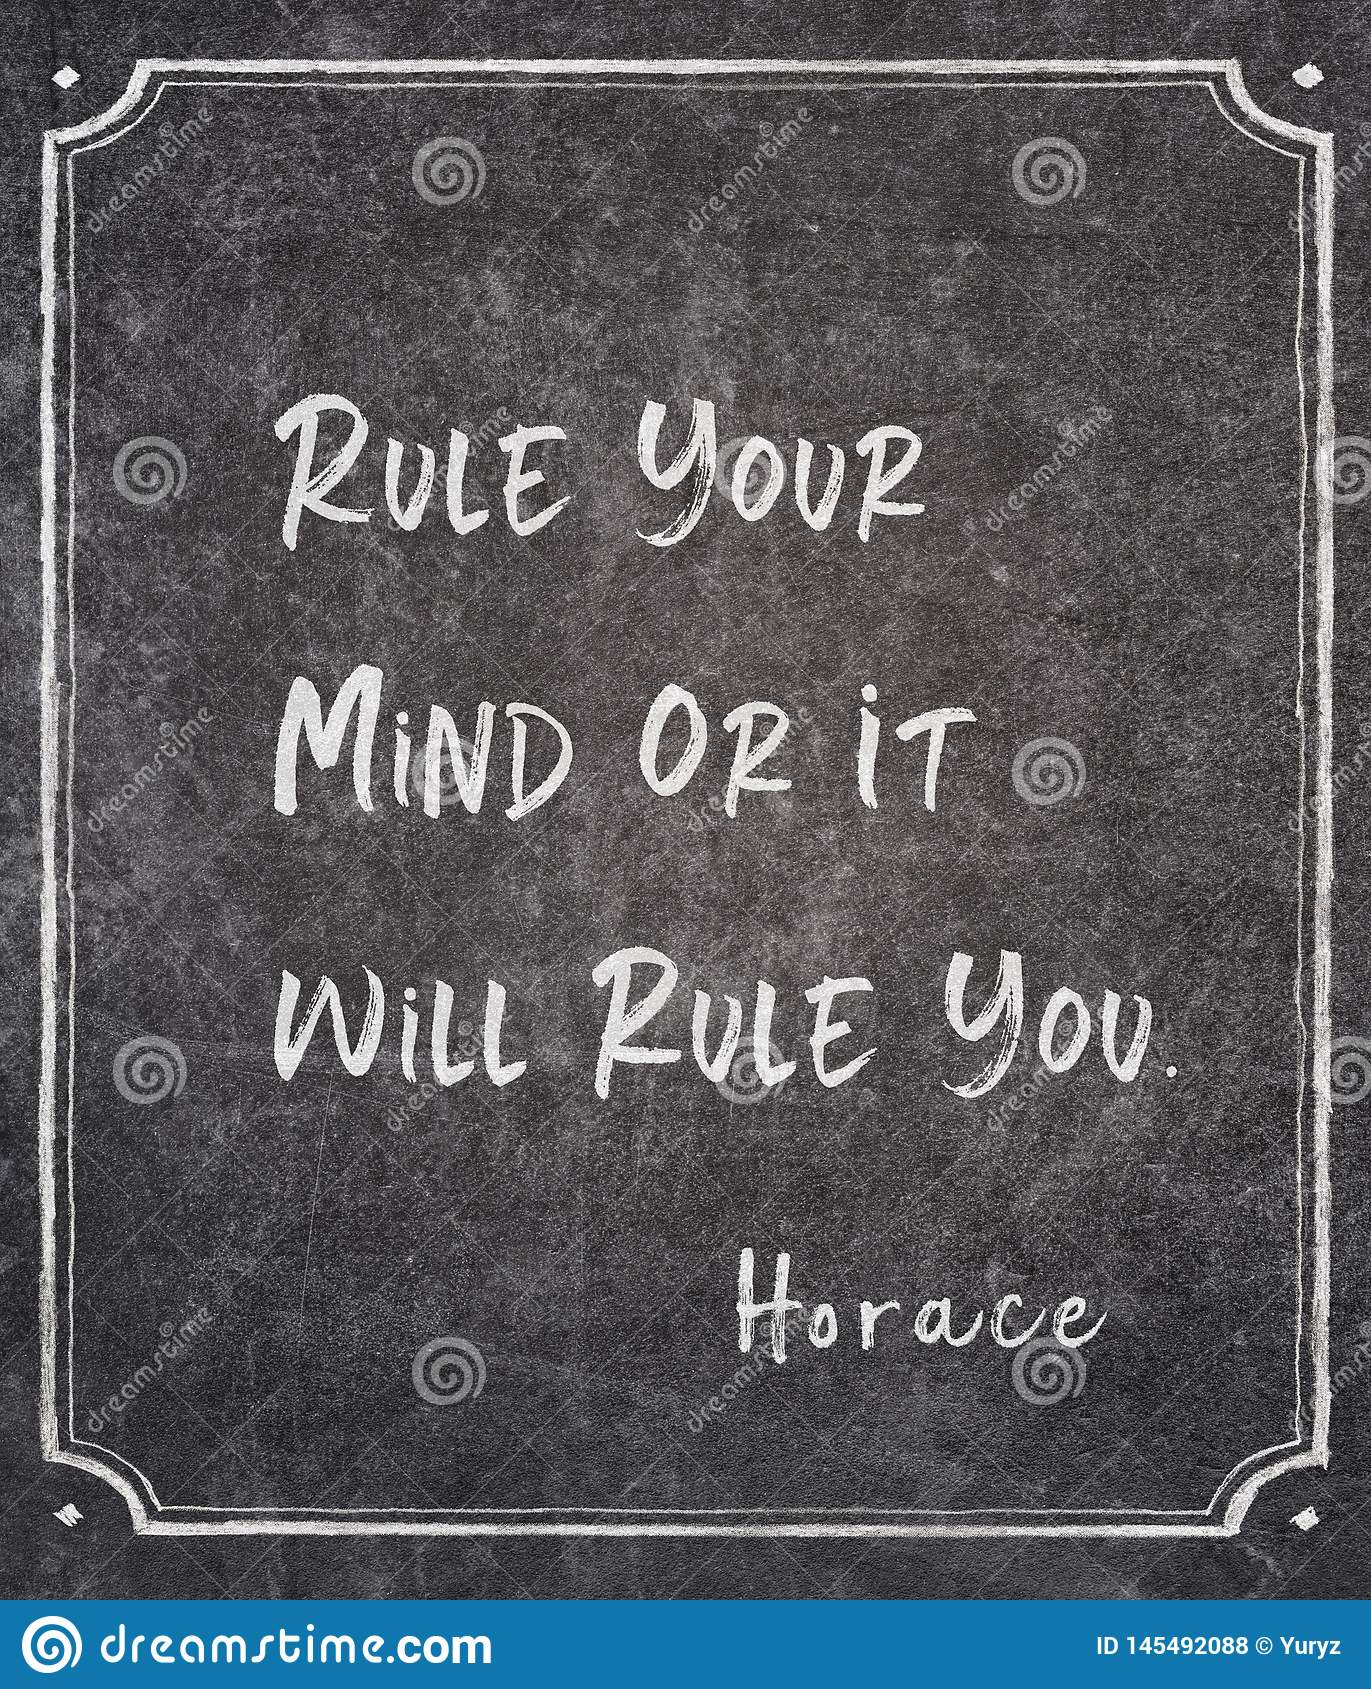 Rule you Horace quote